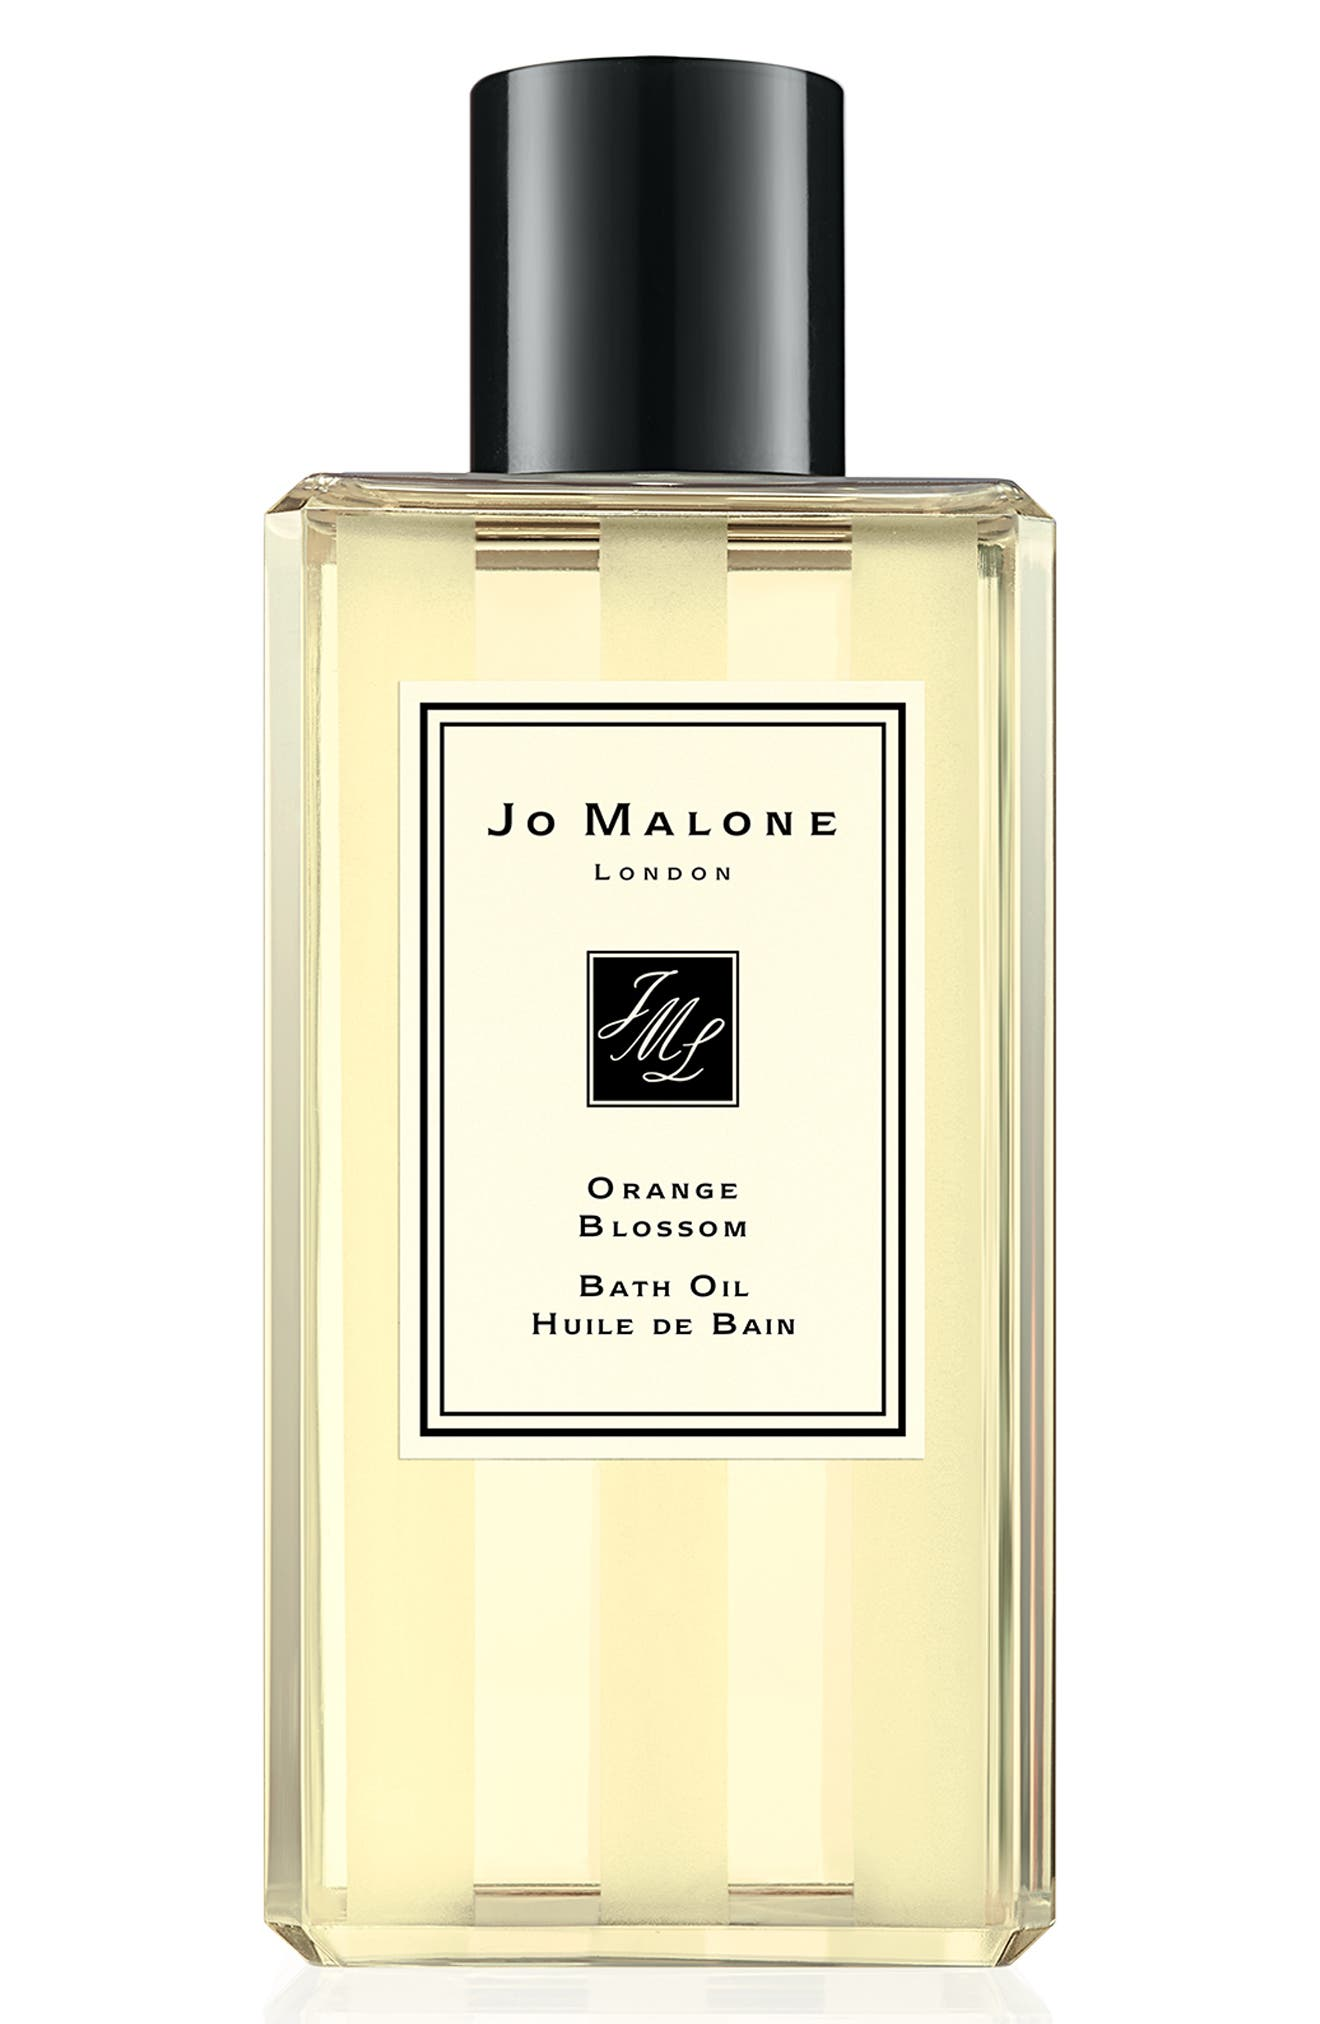 JO MALONE LONDON™ 'Orange Blossom' Bath Oil